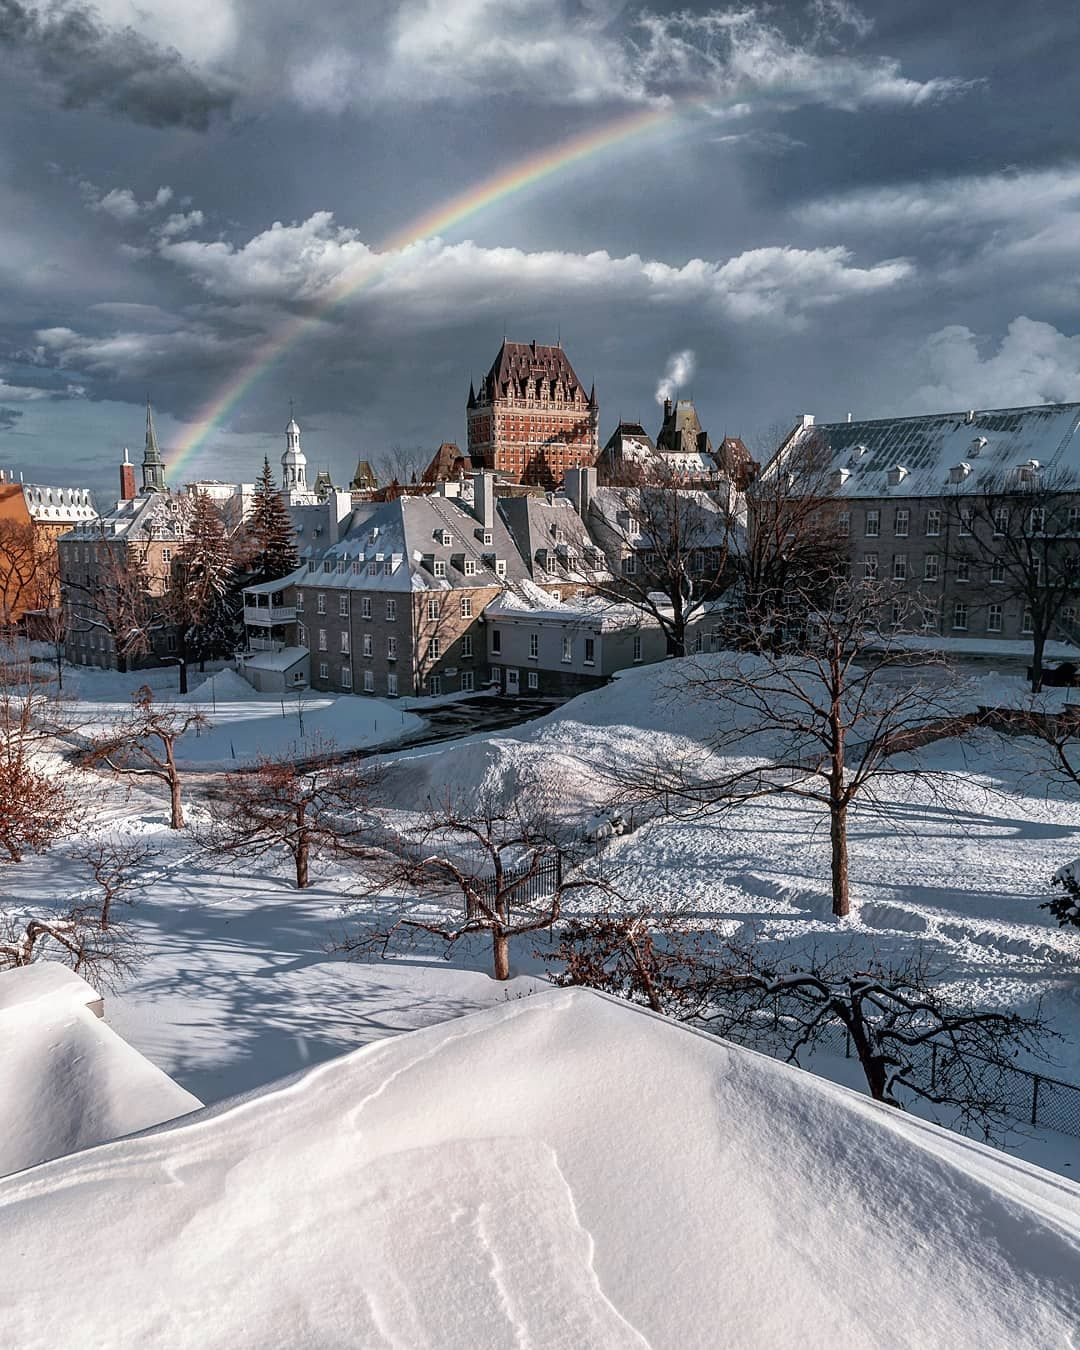 Winter Rainbow Quebec City Quebec By Emmanuel Coveney Manucoveney On Instagram Canada Travel Best Vacations Quebec City Canada